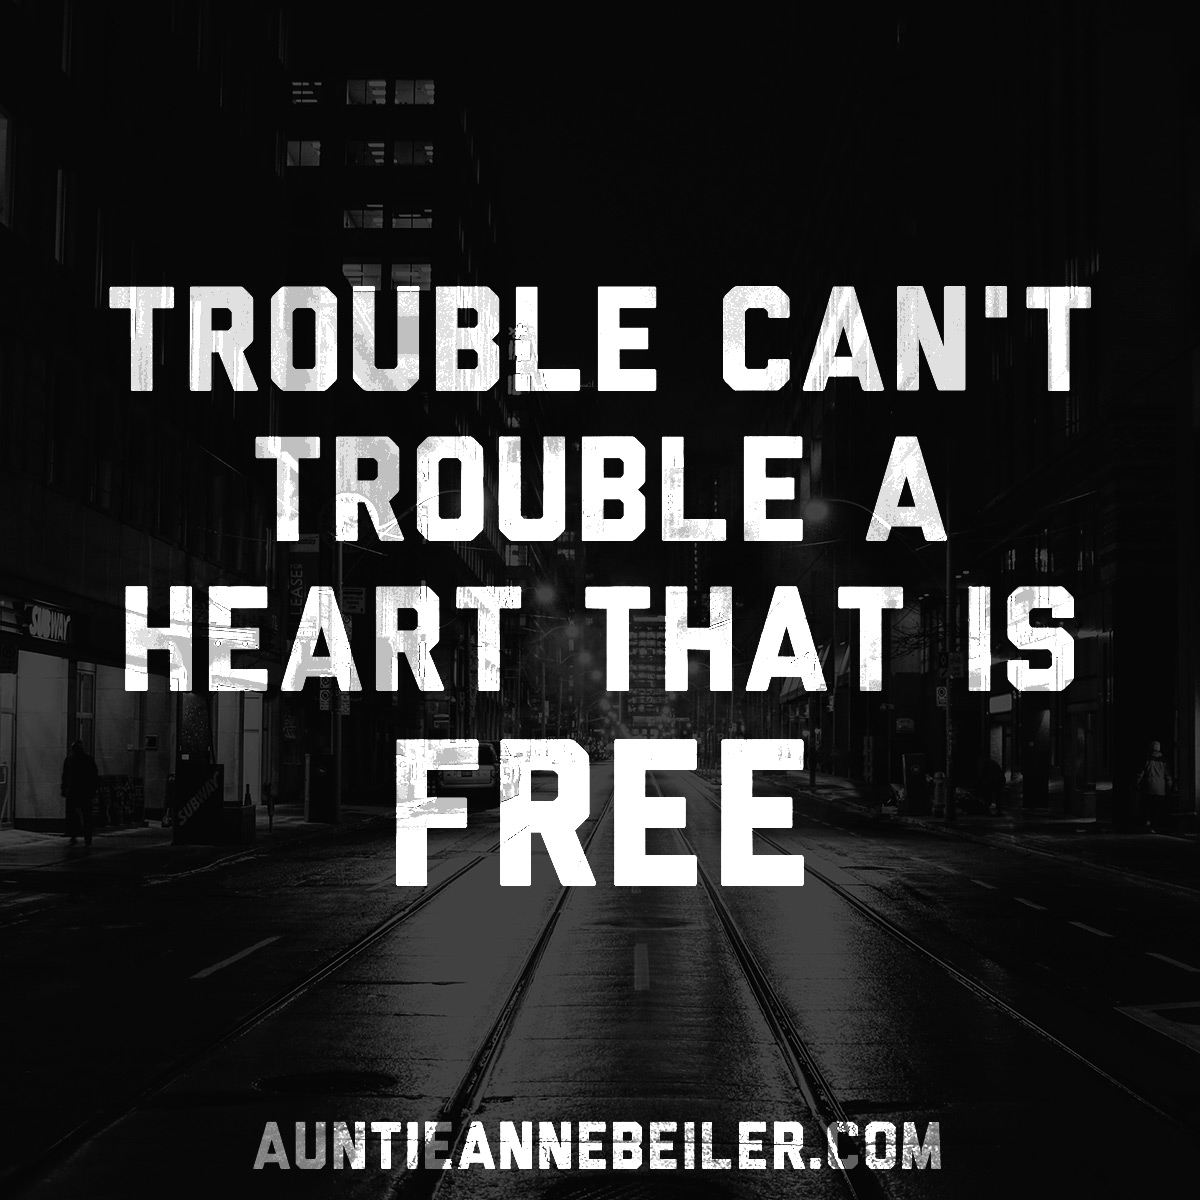 A Trouble Free Heart